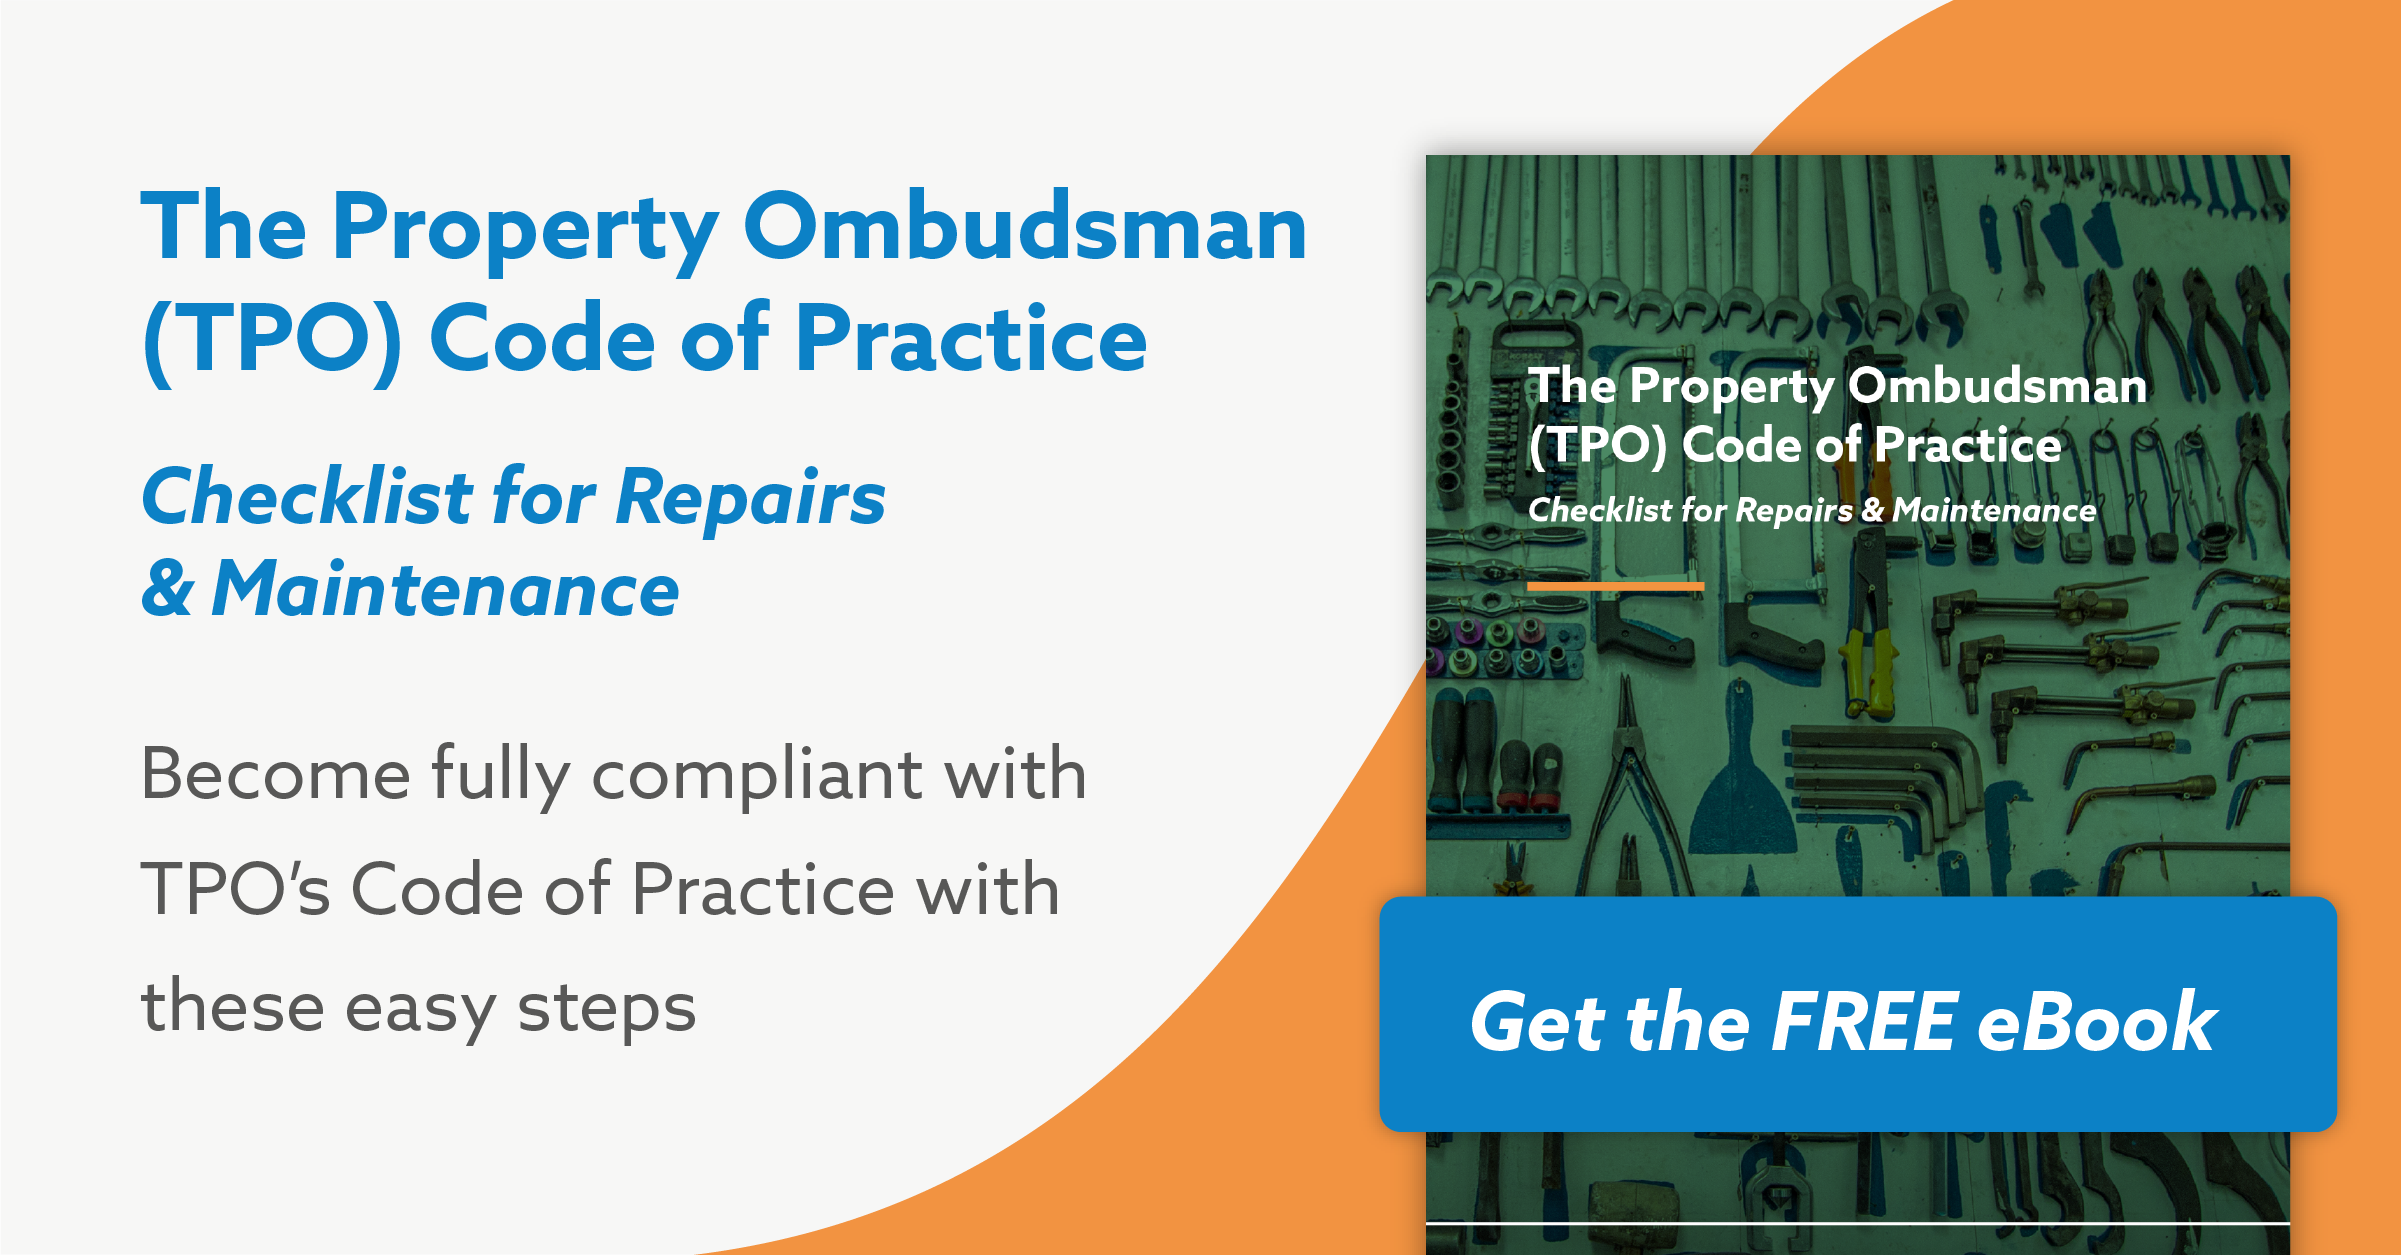 Comply With TPO Code of Practice Changes: You Need to Have This Checklist for Repairs and Maintenance